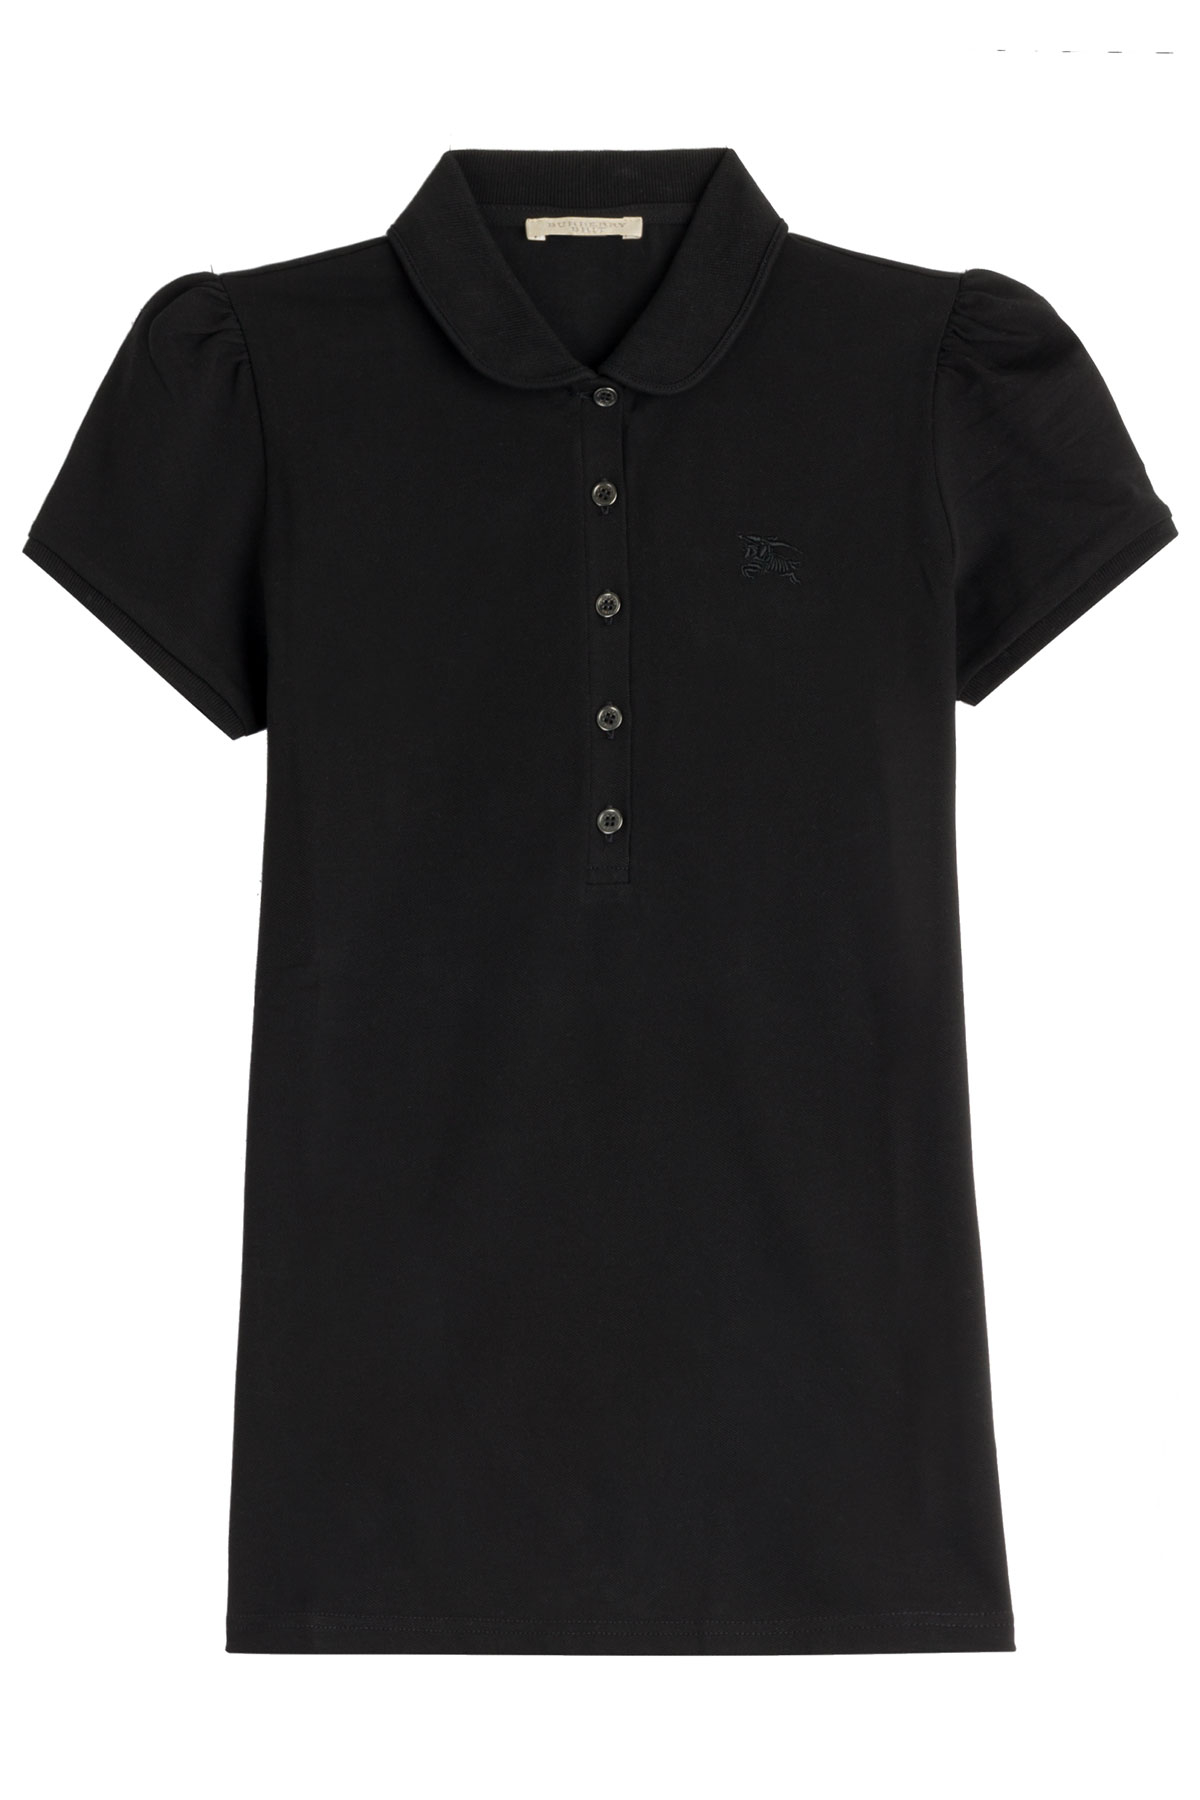 Burberry Brit Cotton Polo Shirt In Black Lyst